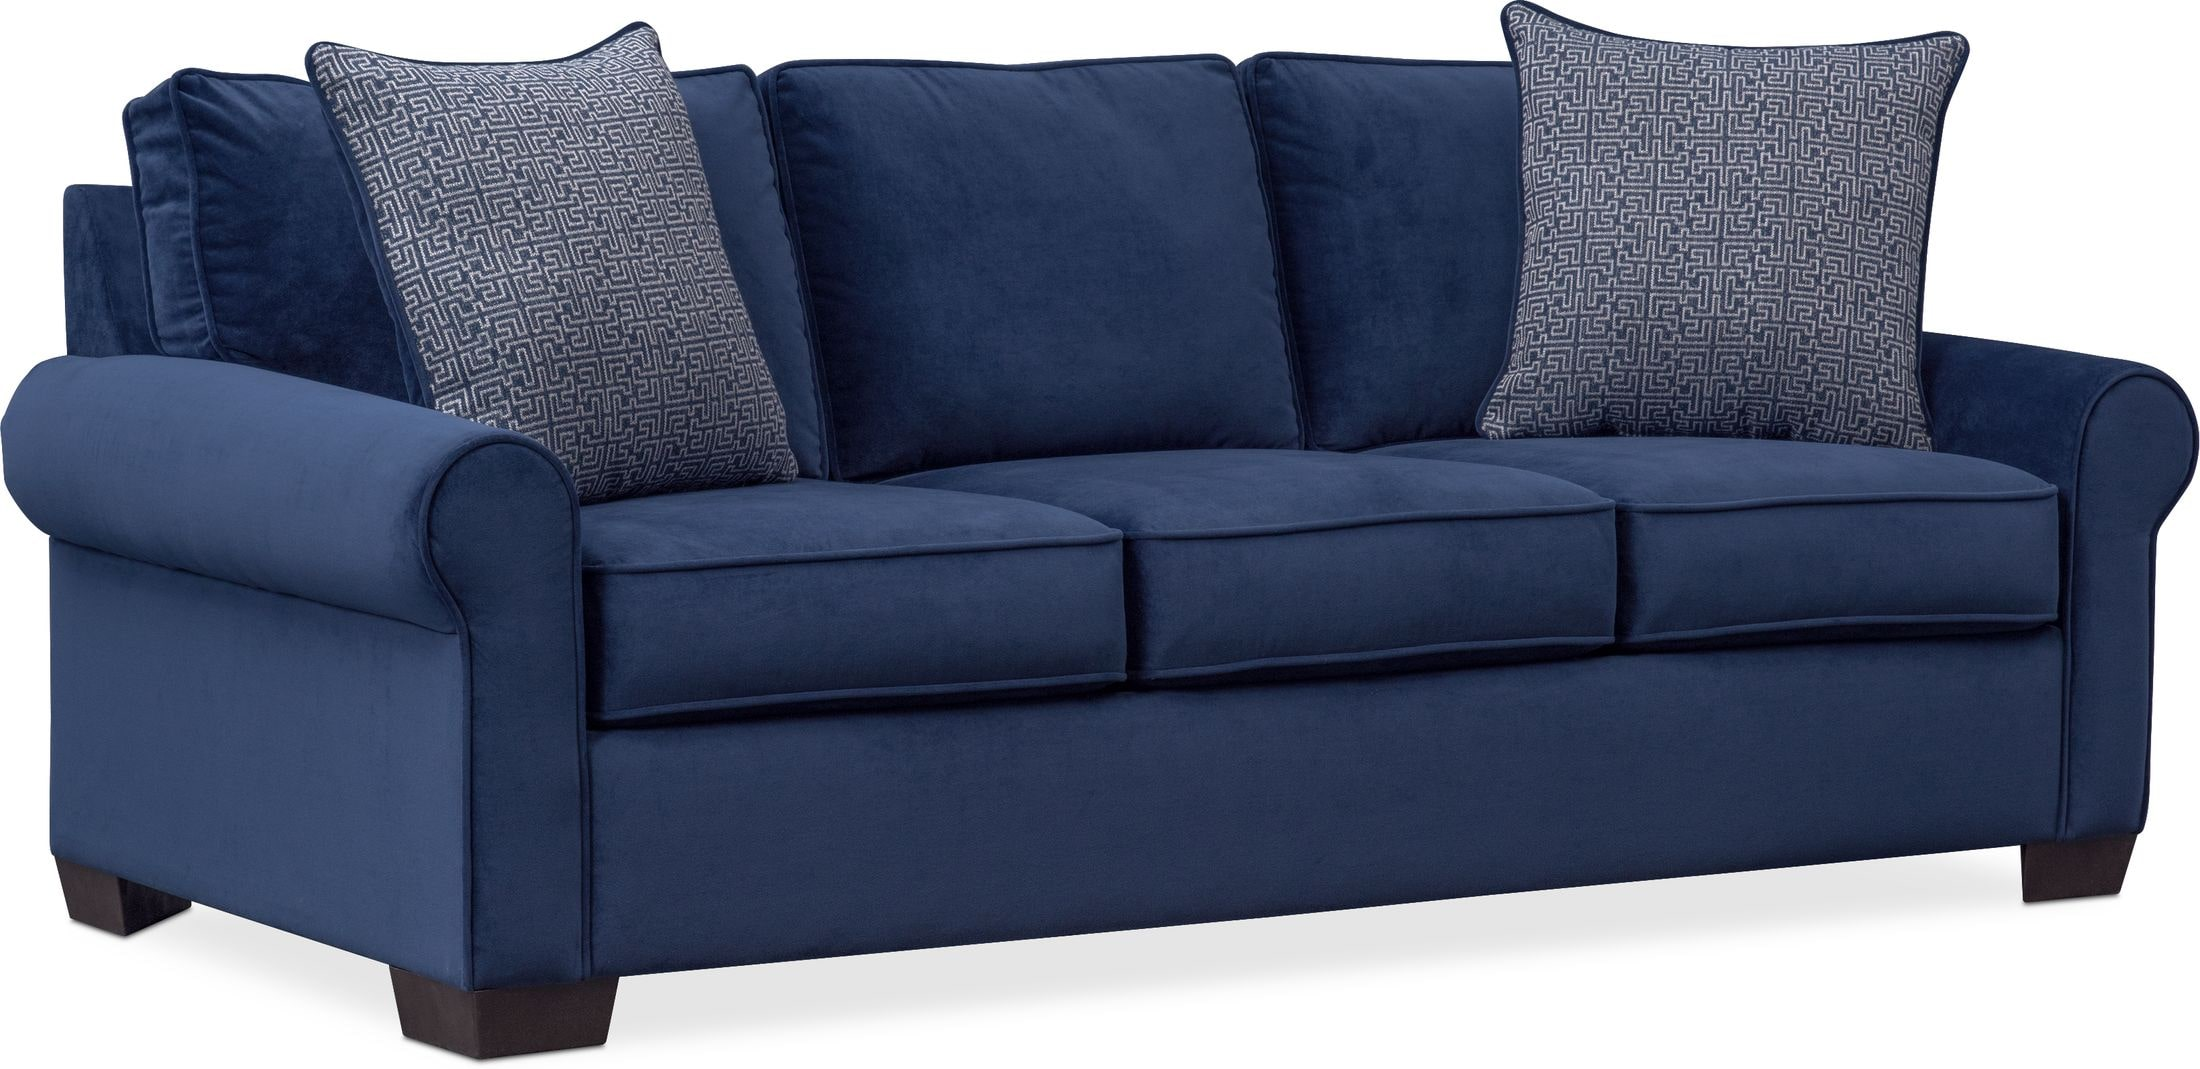 Living Room Furniture - Blake Queen Sleeper Sofa